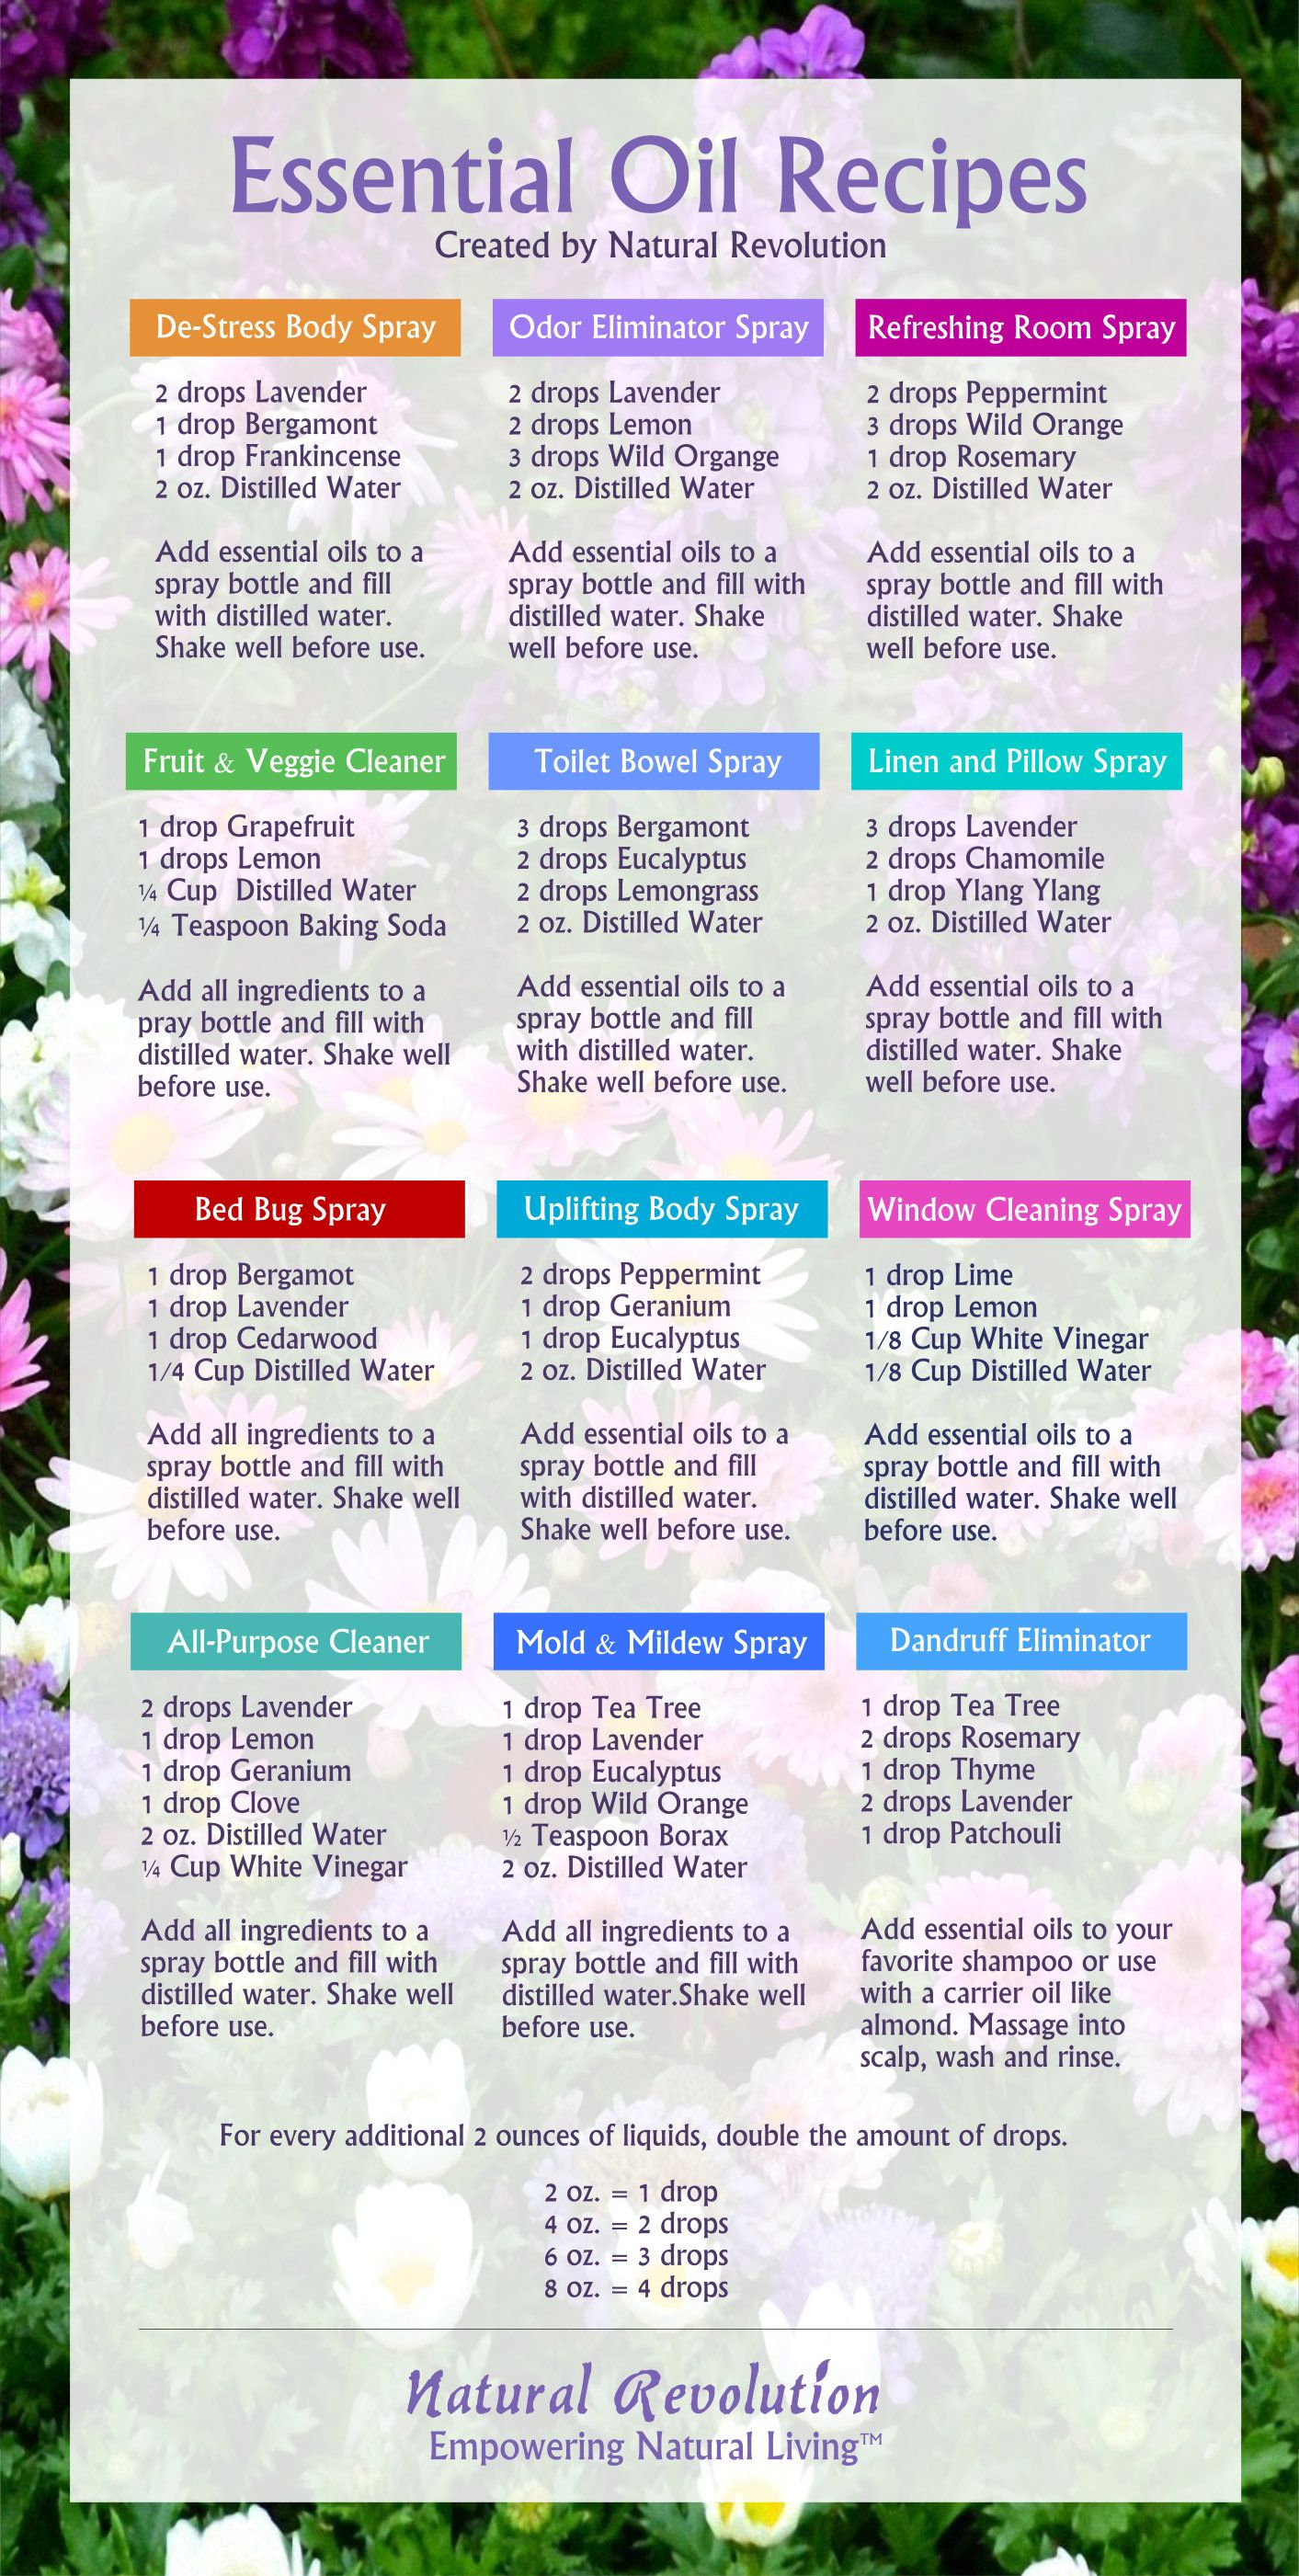 The Ultimate Essential Oils Guide: Therapeutic Uses, Recipes & Safety